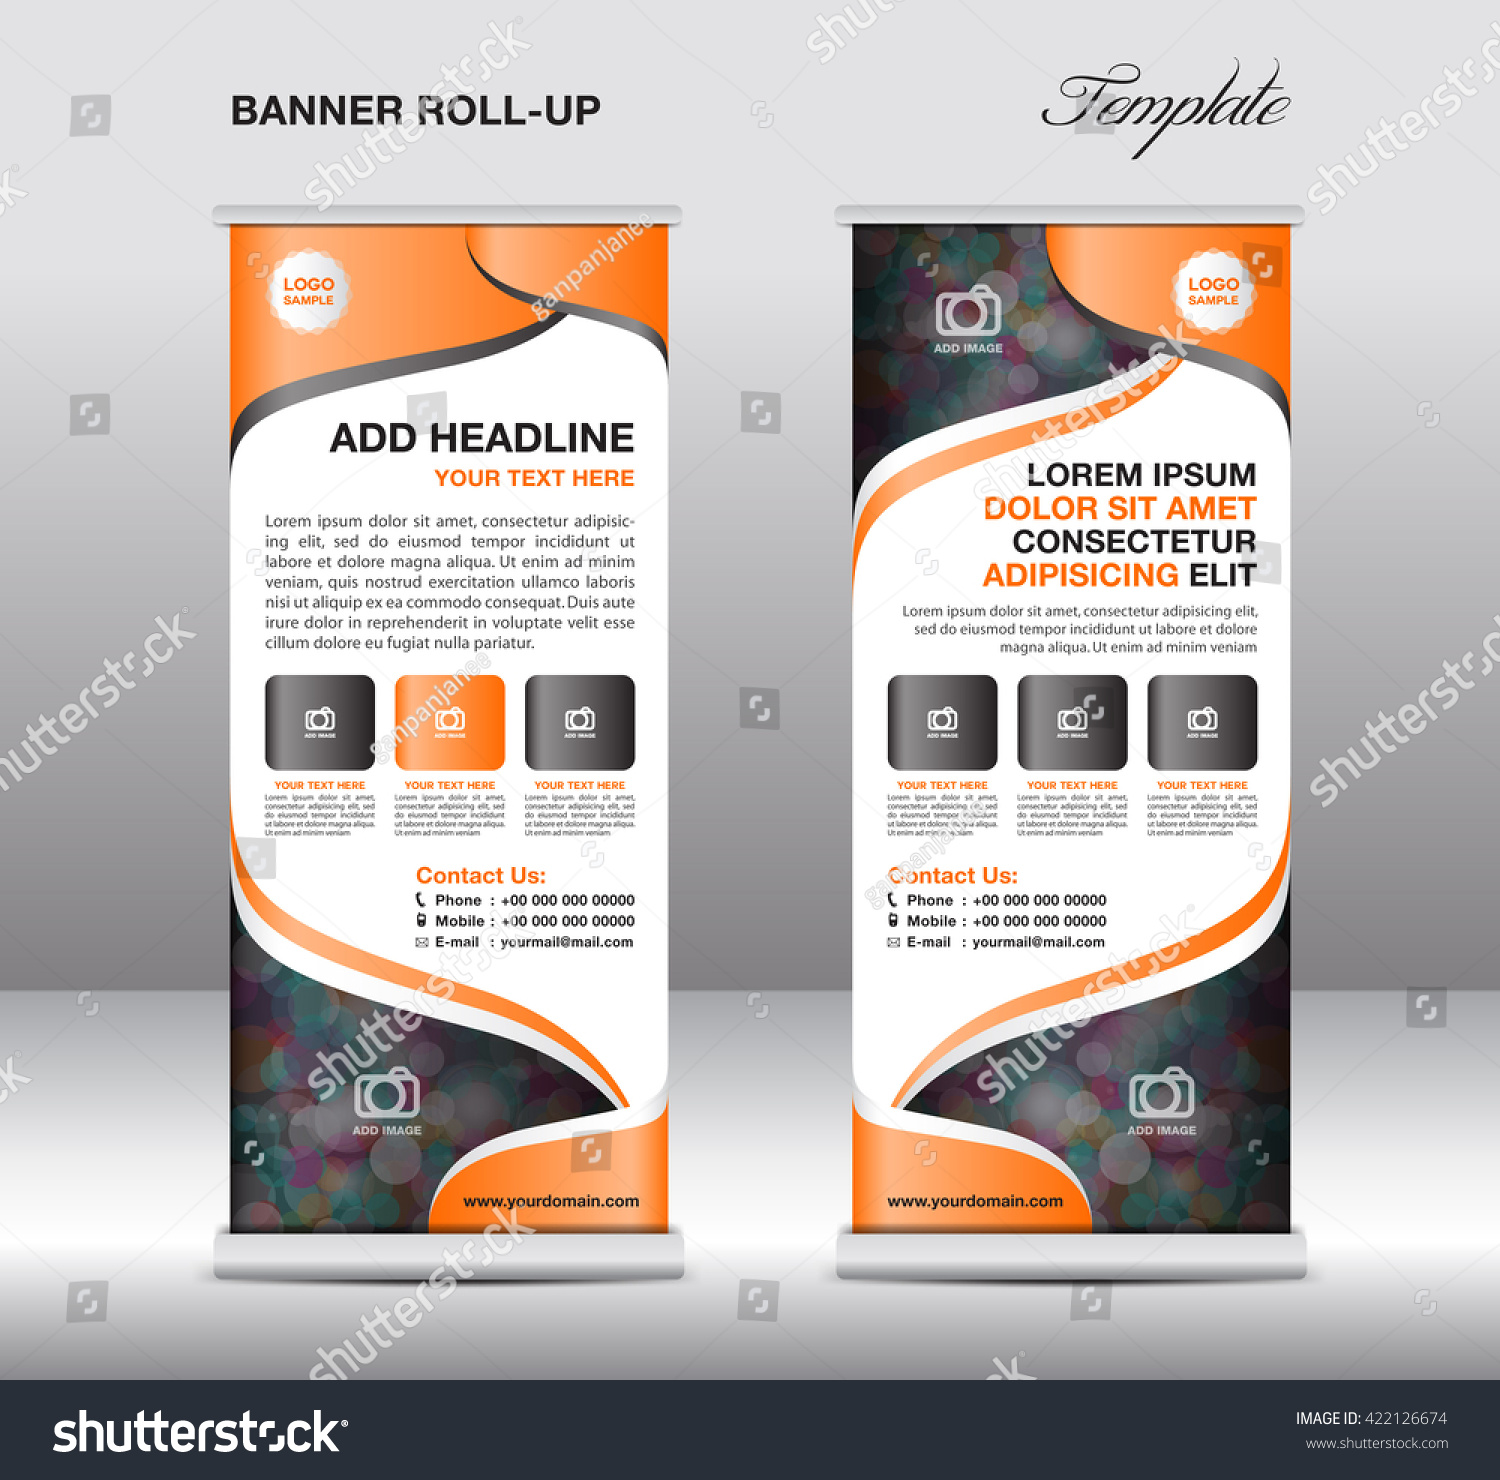 orange roll banner stand template advertisement stock vector orange roll up banner stand template advertisement presentation flyer deisgn display vector